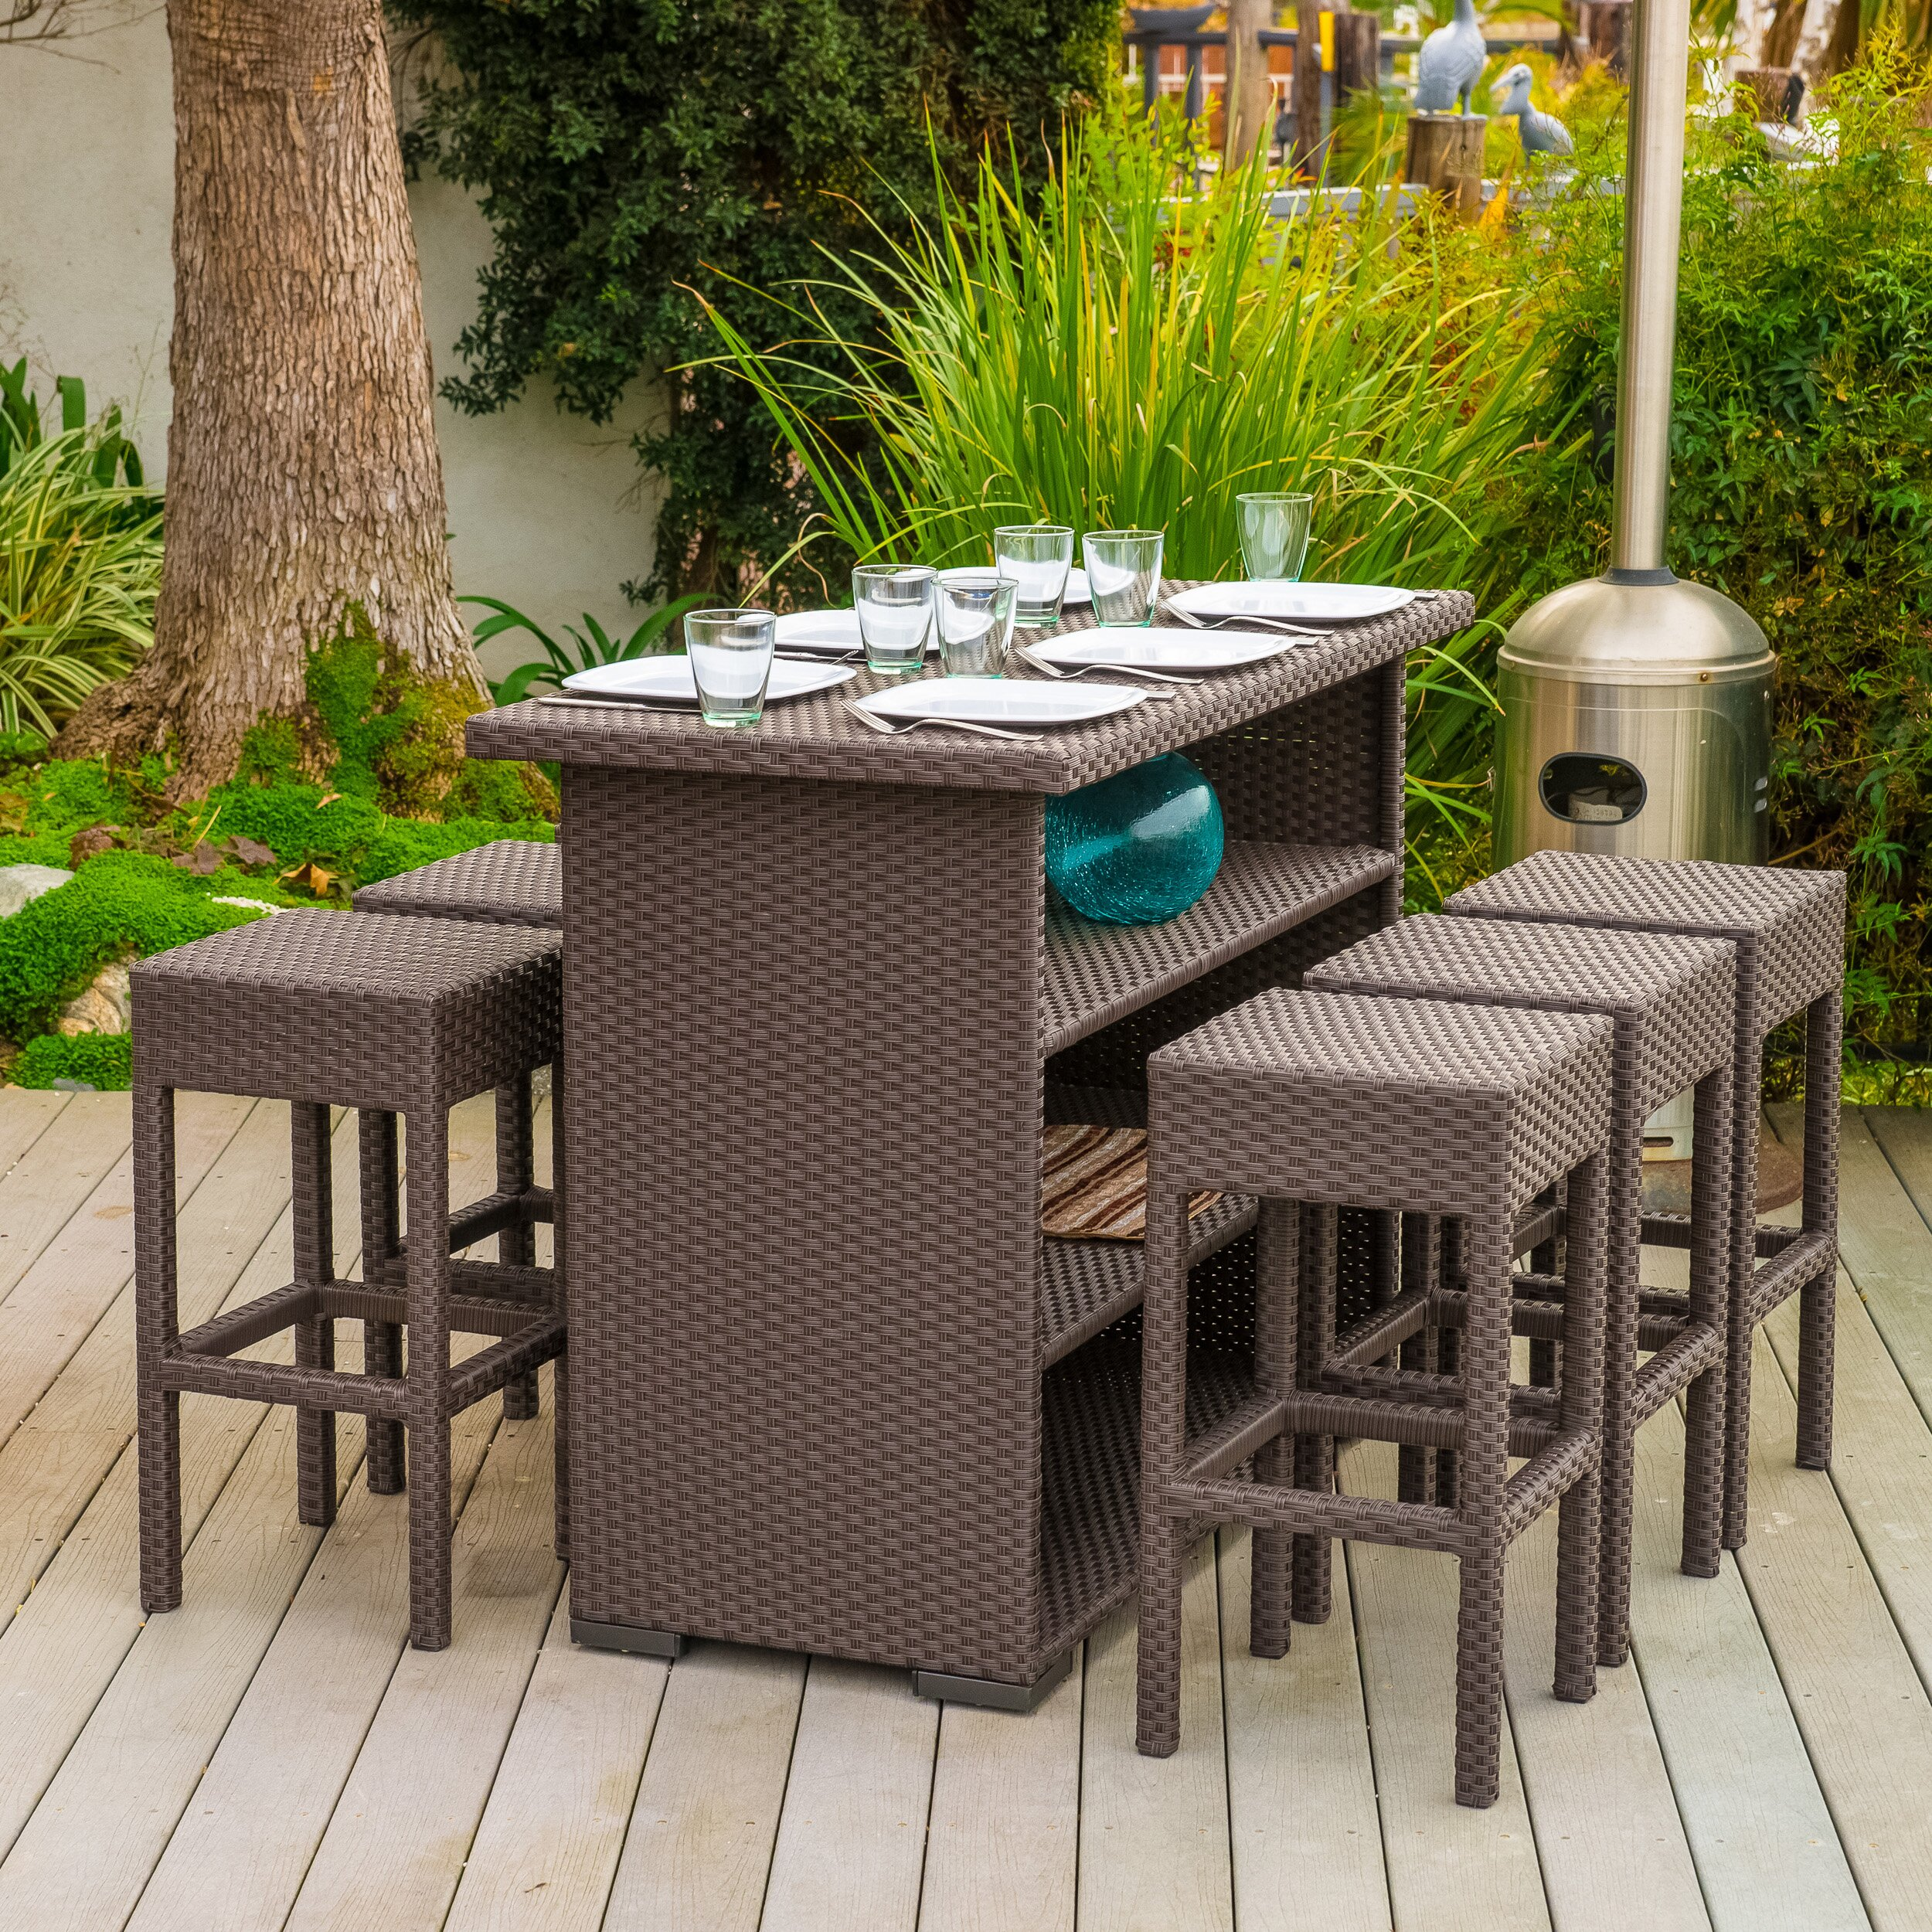 Patio Bar Set Outdoor Table 7 Pcs 6 Barstools Chairs Brown Wicker